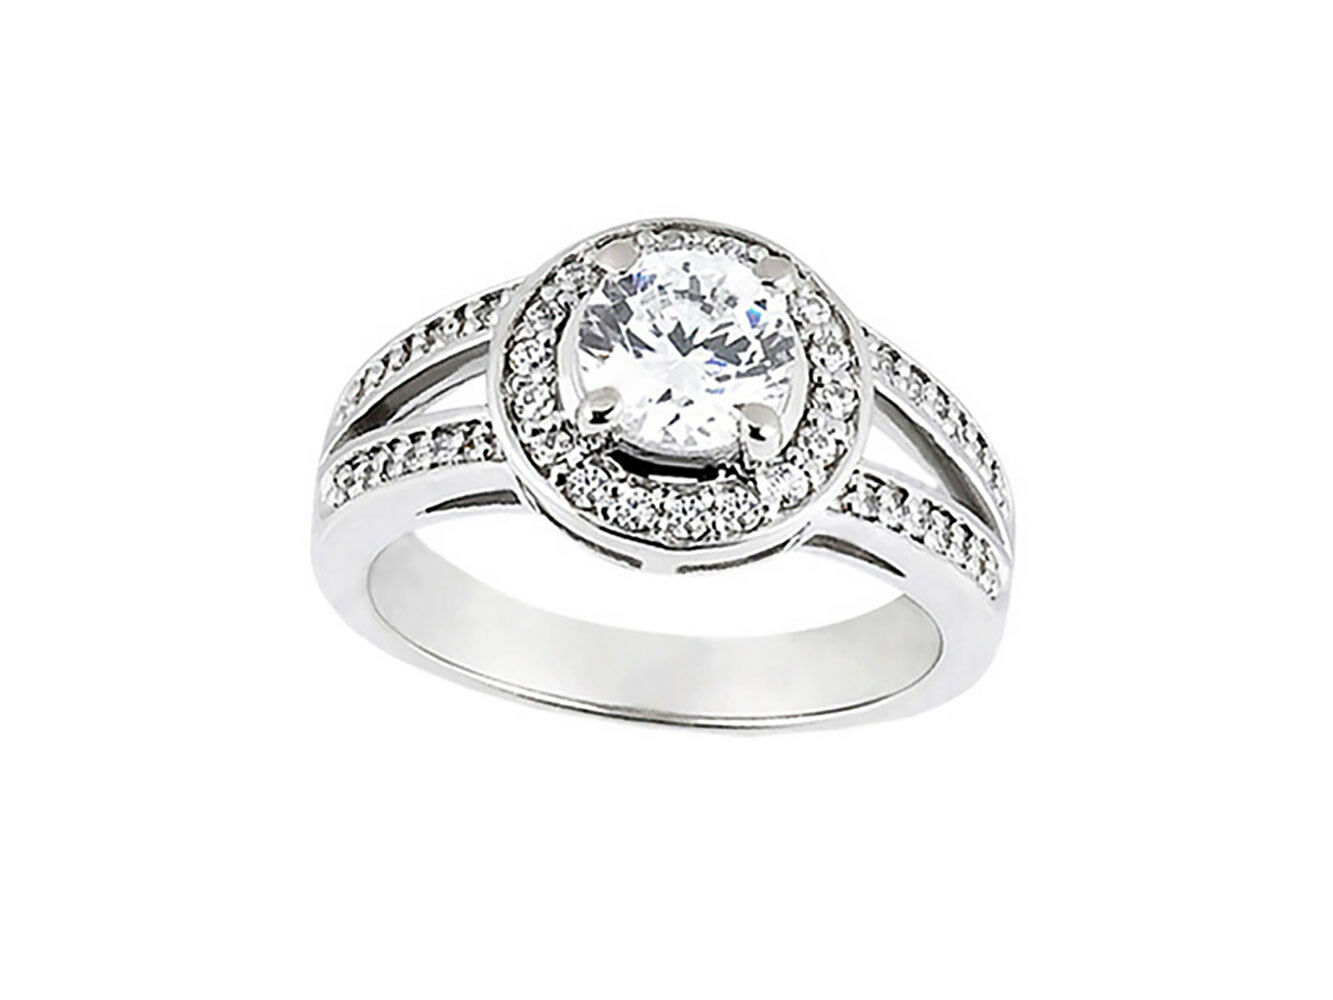 Natural 0.75Ct Round Cut Diamond Halo Split Shank Engagement Ring 10k gold GH I1